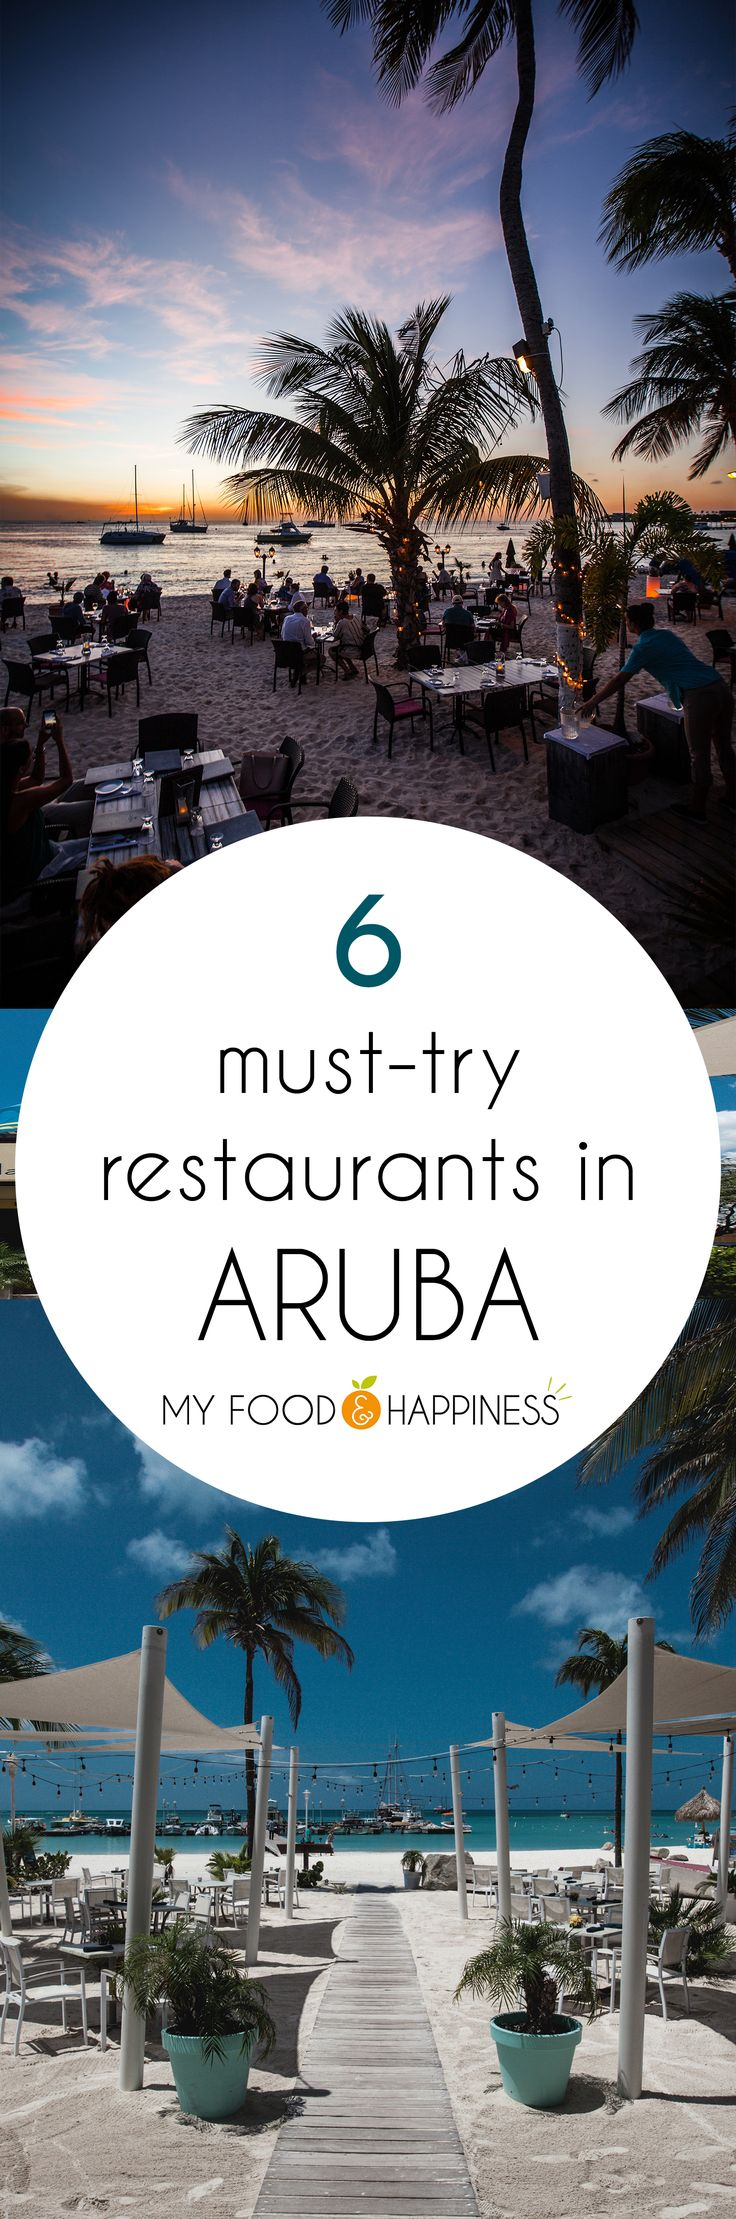 Try the best of the Aruba's local cuisine at these 6 amazing restaurants, 3 of which are located right on the beach and ensure a romantic dinner by the the Caribbean sea. In this post you will also find out which are the top local foods to try during your holiday in Aruba.